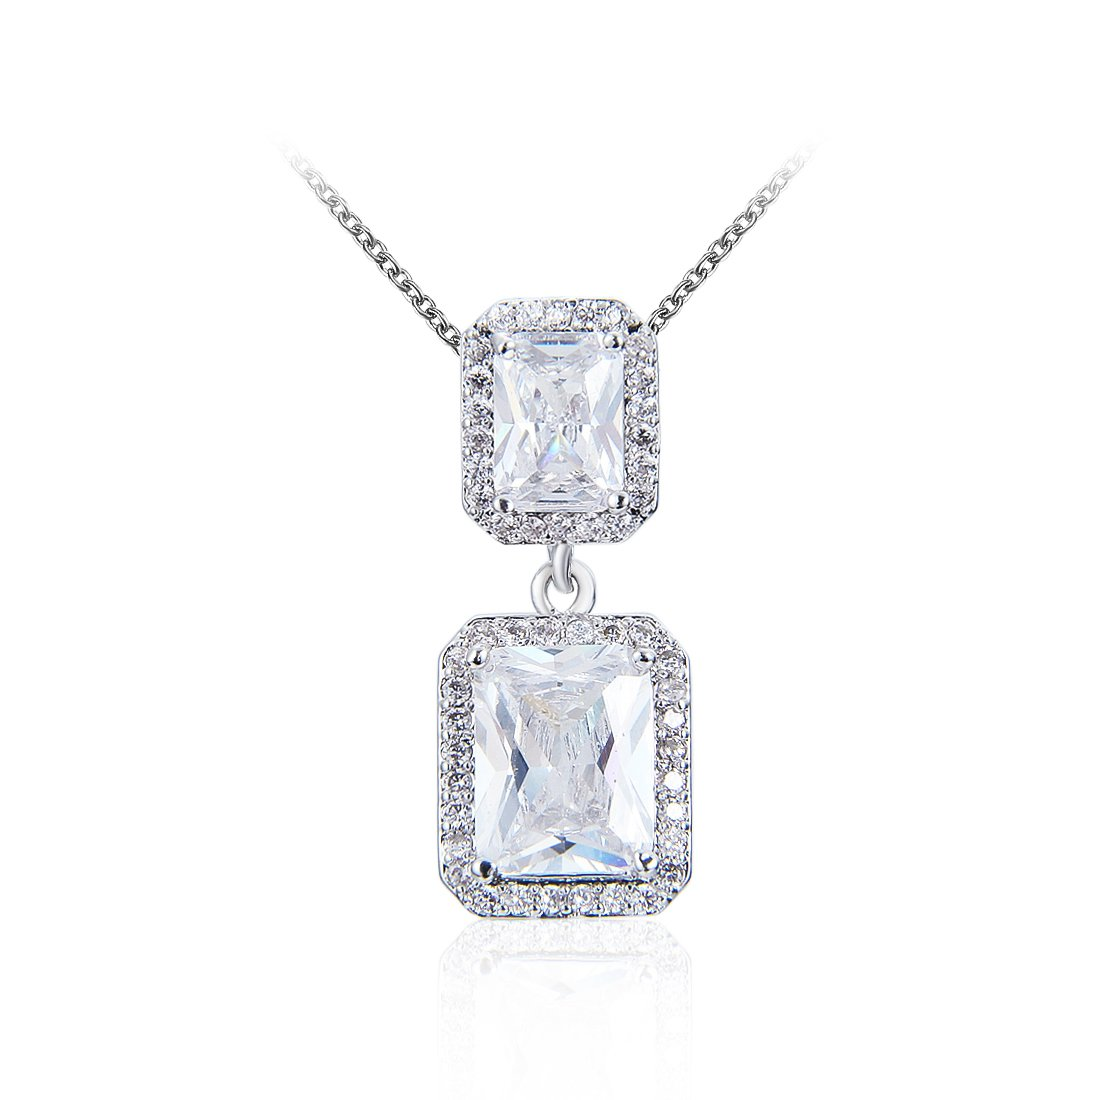 Wordless Love Jewelry Sets for Women Cubic Zirconia Party Earrings Pendant Necklace Set by Wordless Love (Image #4)